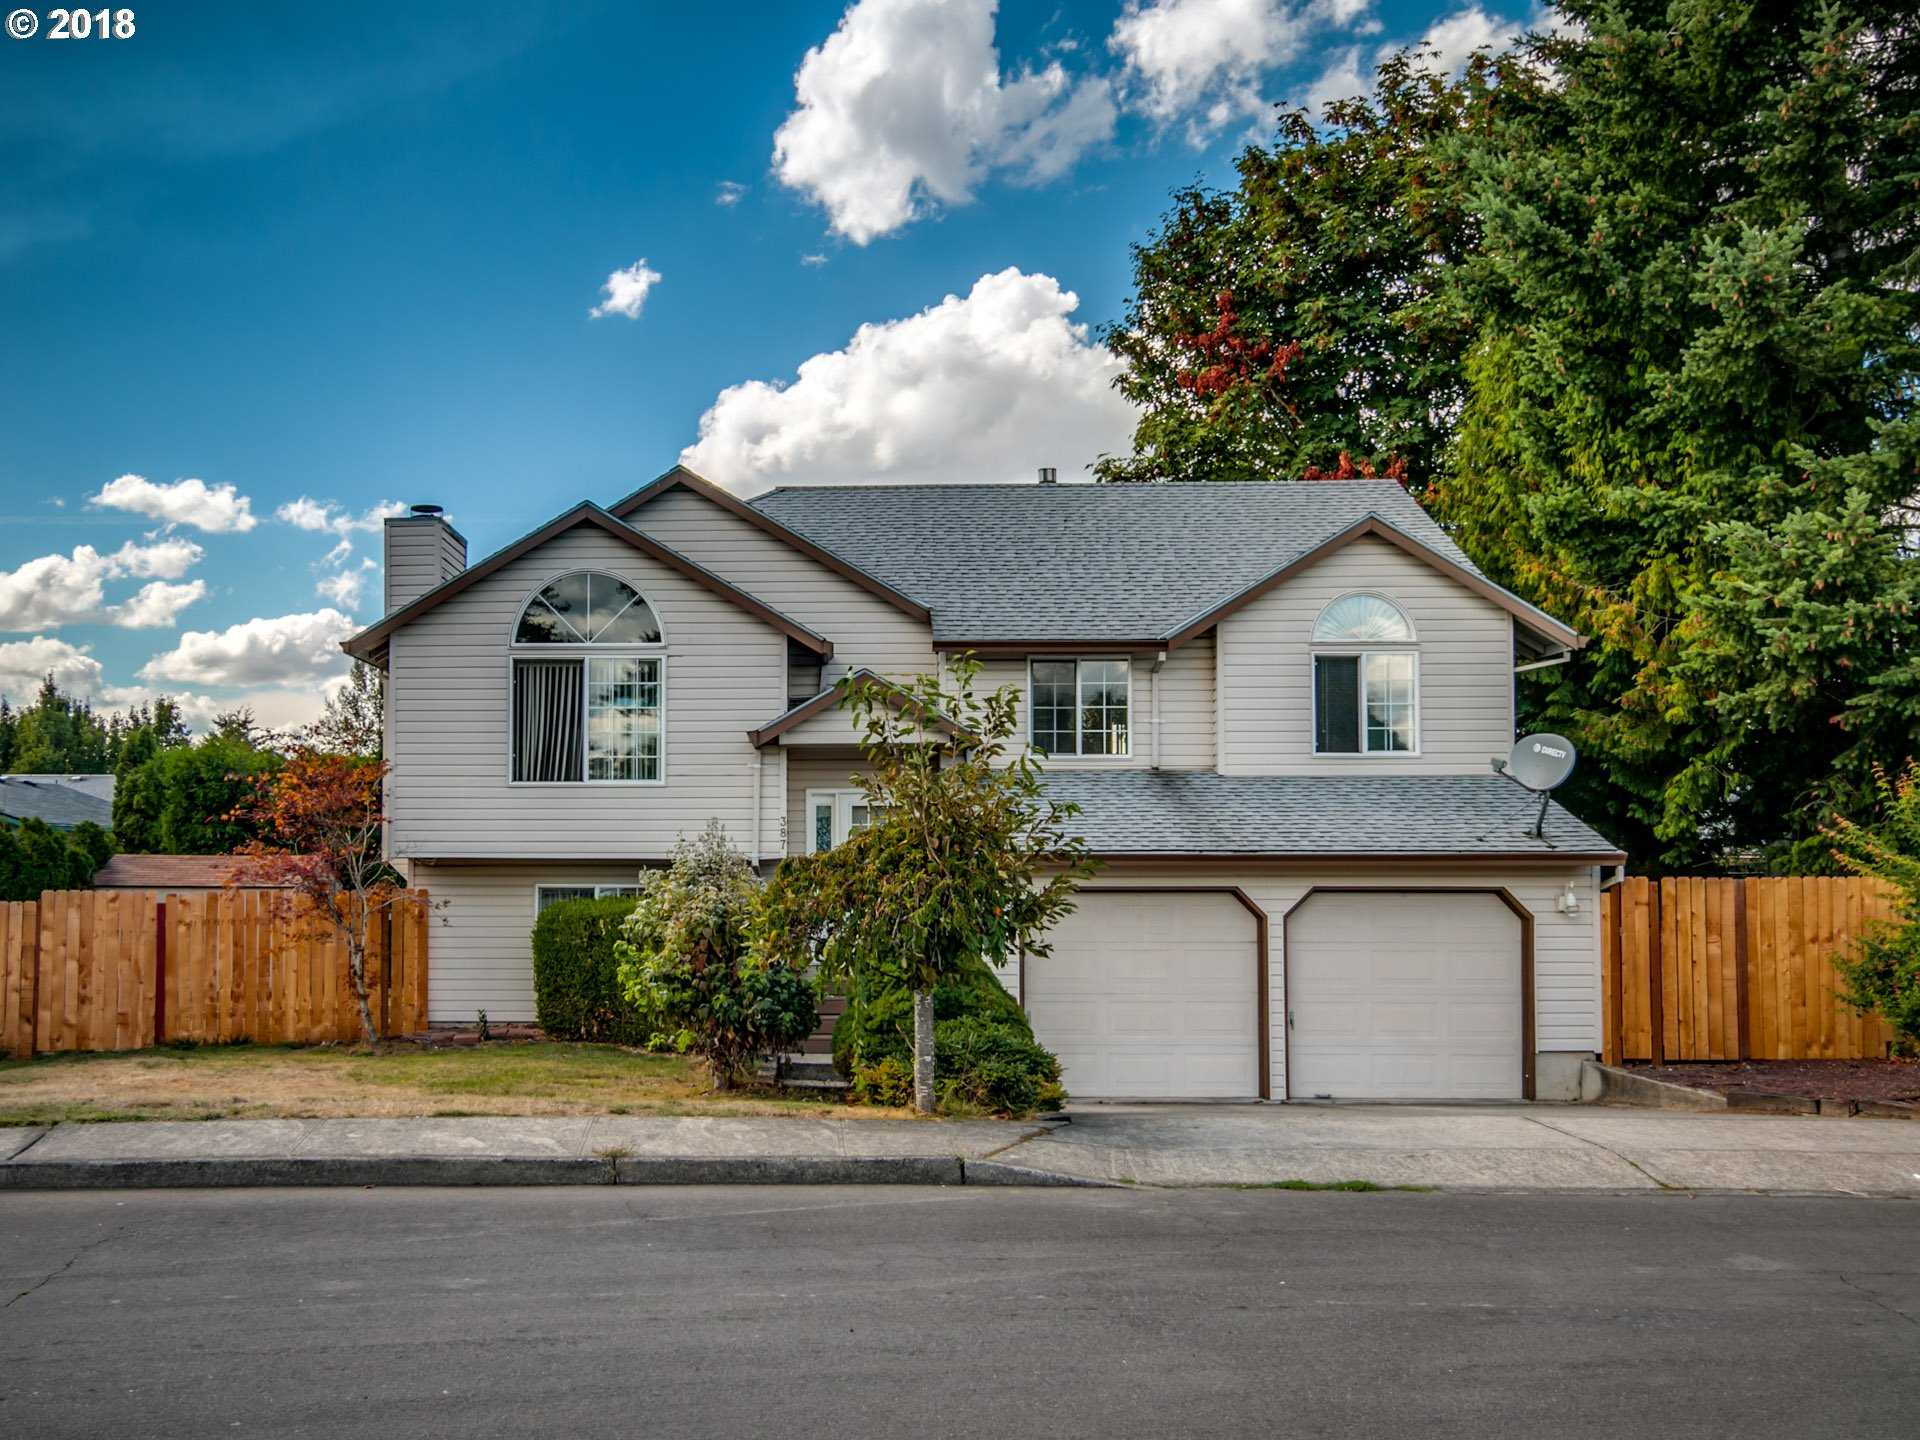 $369,900 - 4Br/3Ba -  for Sale in Powell Valley, Gresham